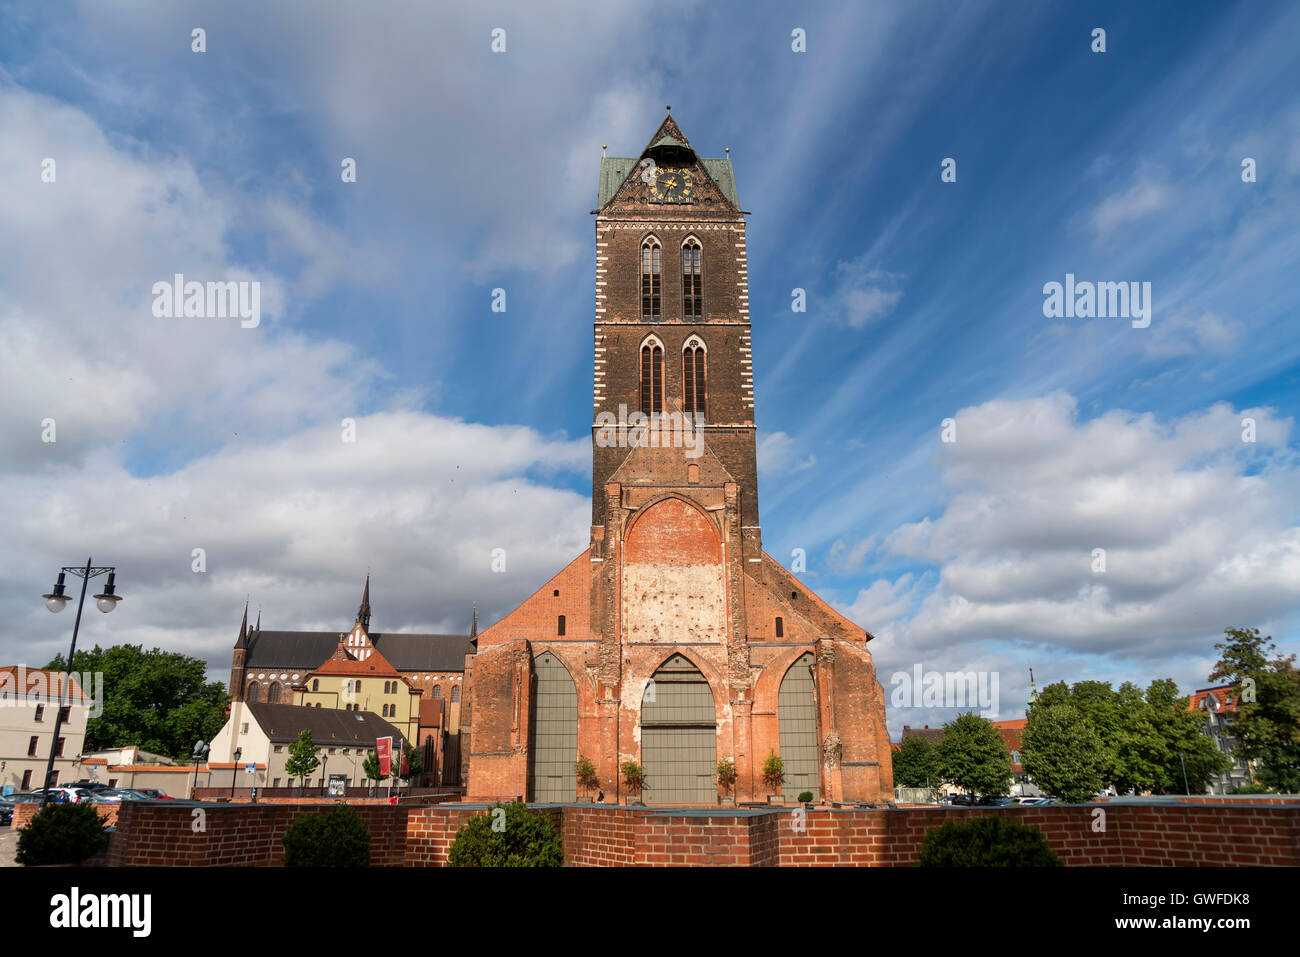 St. Mary's Church tower, Hanseatic City of Wismar, Mecklenburg-Vorpommern, Germany - Stock Image